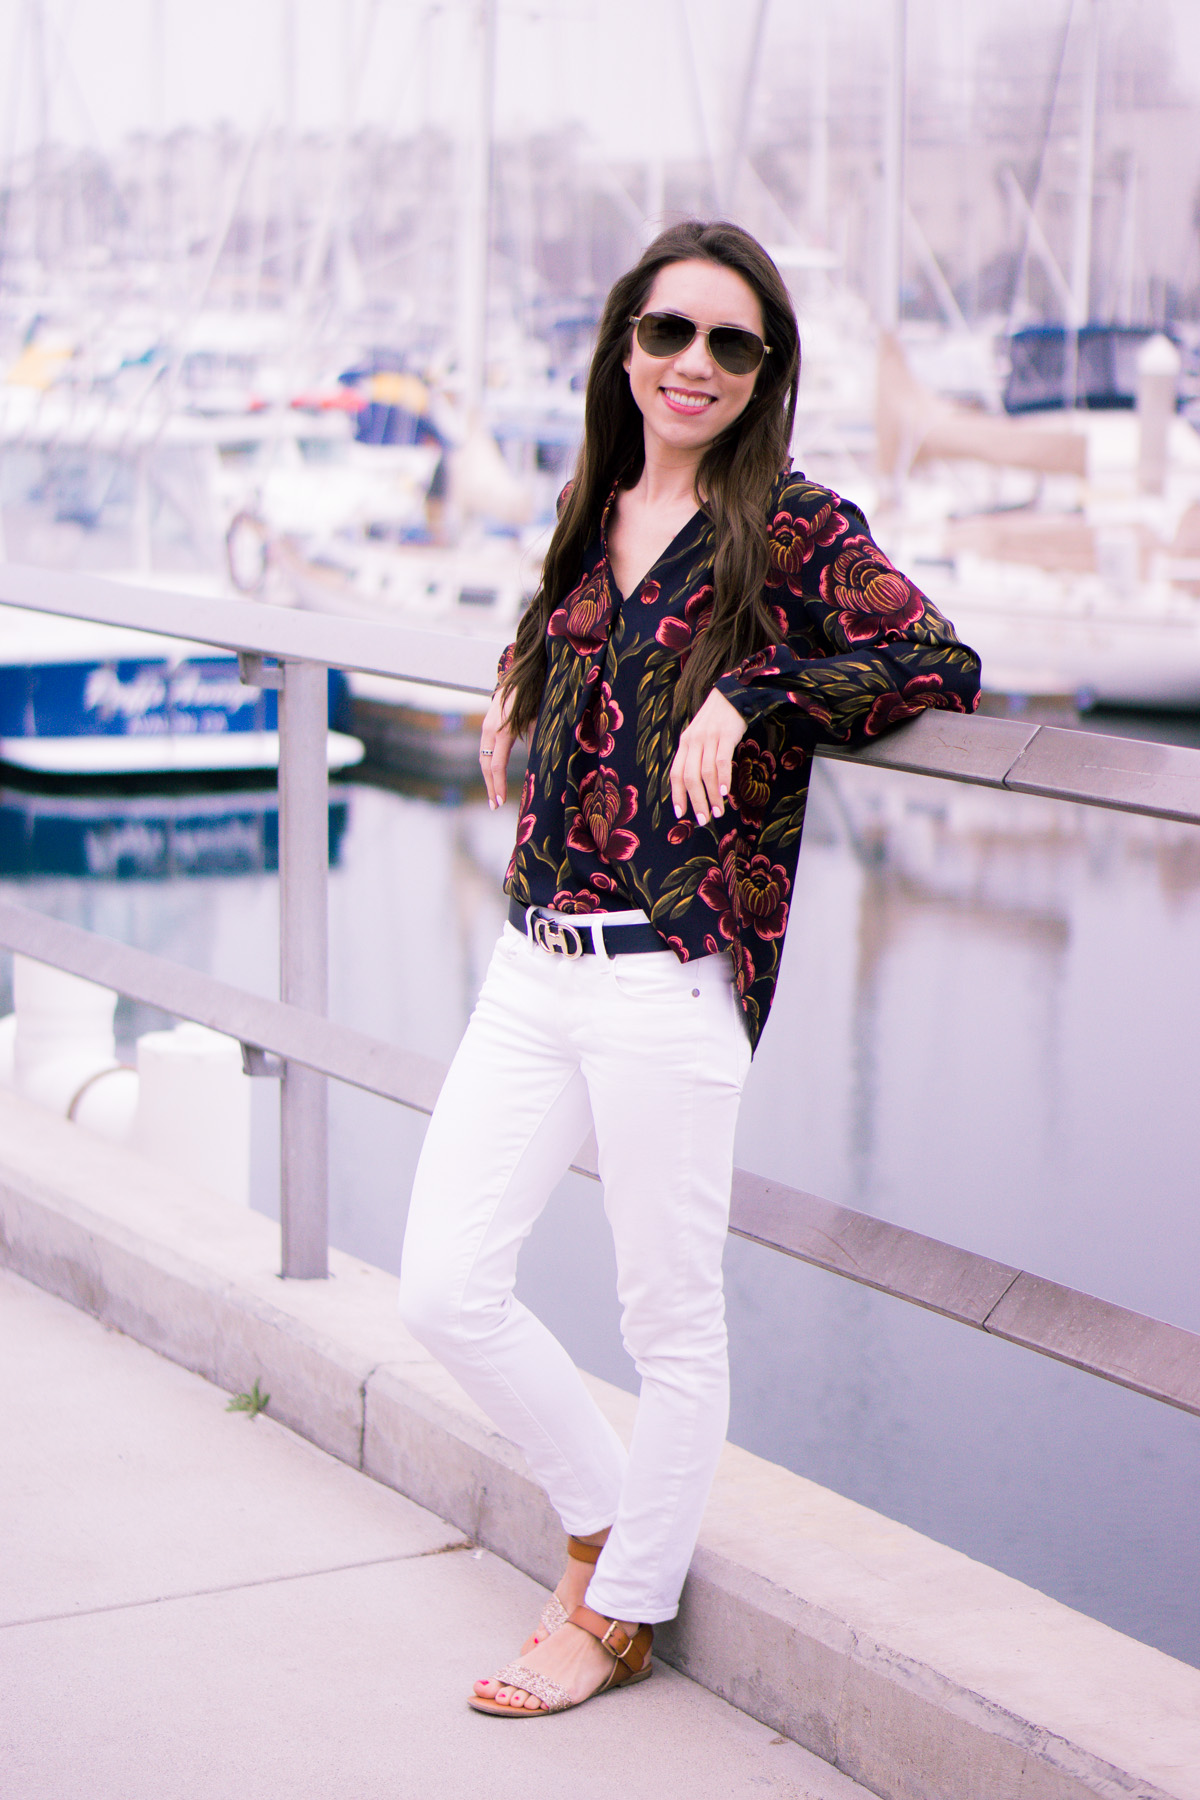 How to wear Spring Florals | Ann Taylor Garden Pleated Petite Blouse | office work date casual outfits| Target Lakitia Sandals | Paige white jeans | J. Crew shorts | Banana Republic Sloan Pants | Talbots horsebit belt clasp | | Tory Burch Chain Wallet